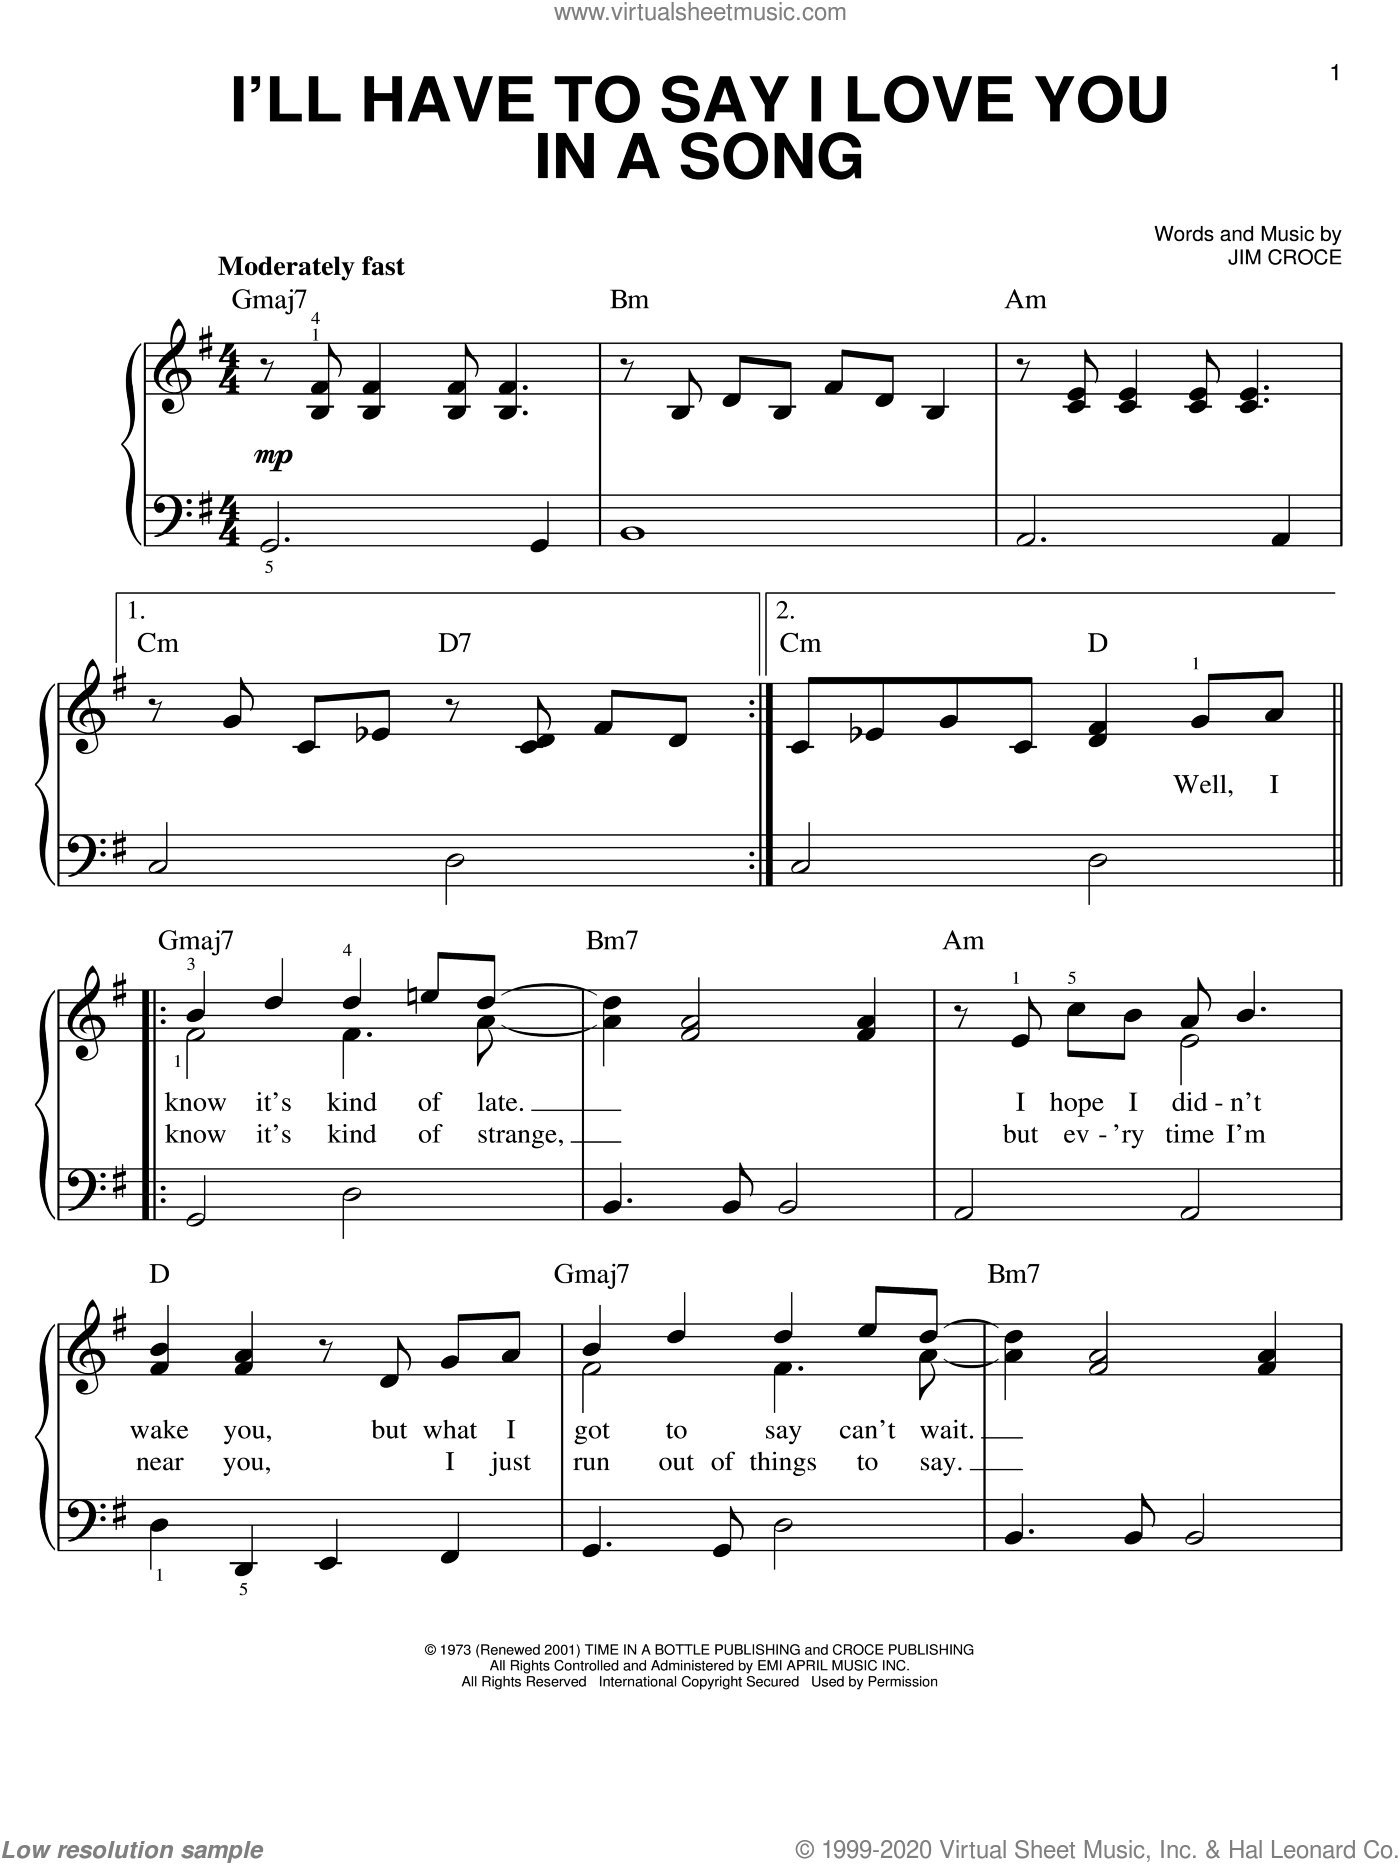 I'll Have To Say I Love You In A Song sheet music for piano solo by Jim Croce, wedding score, easy skill level